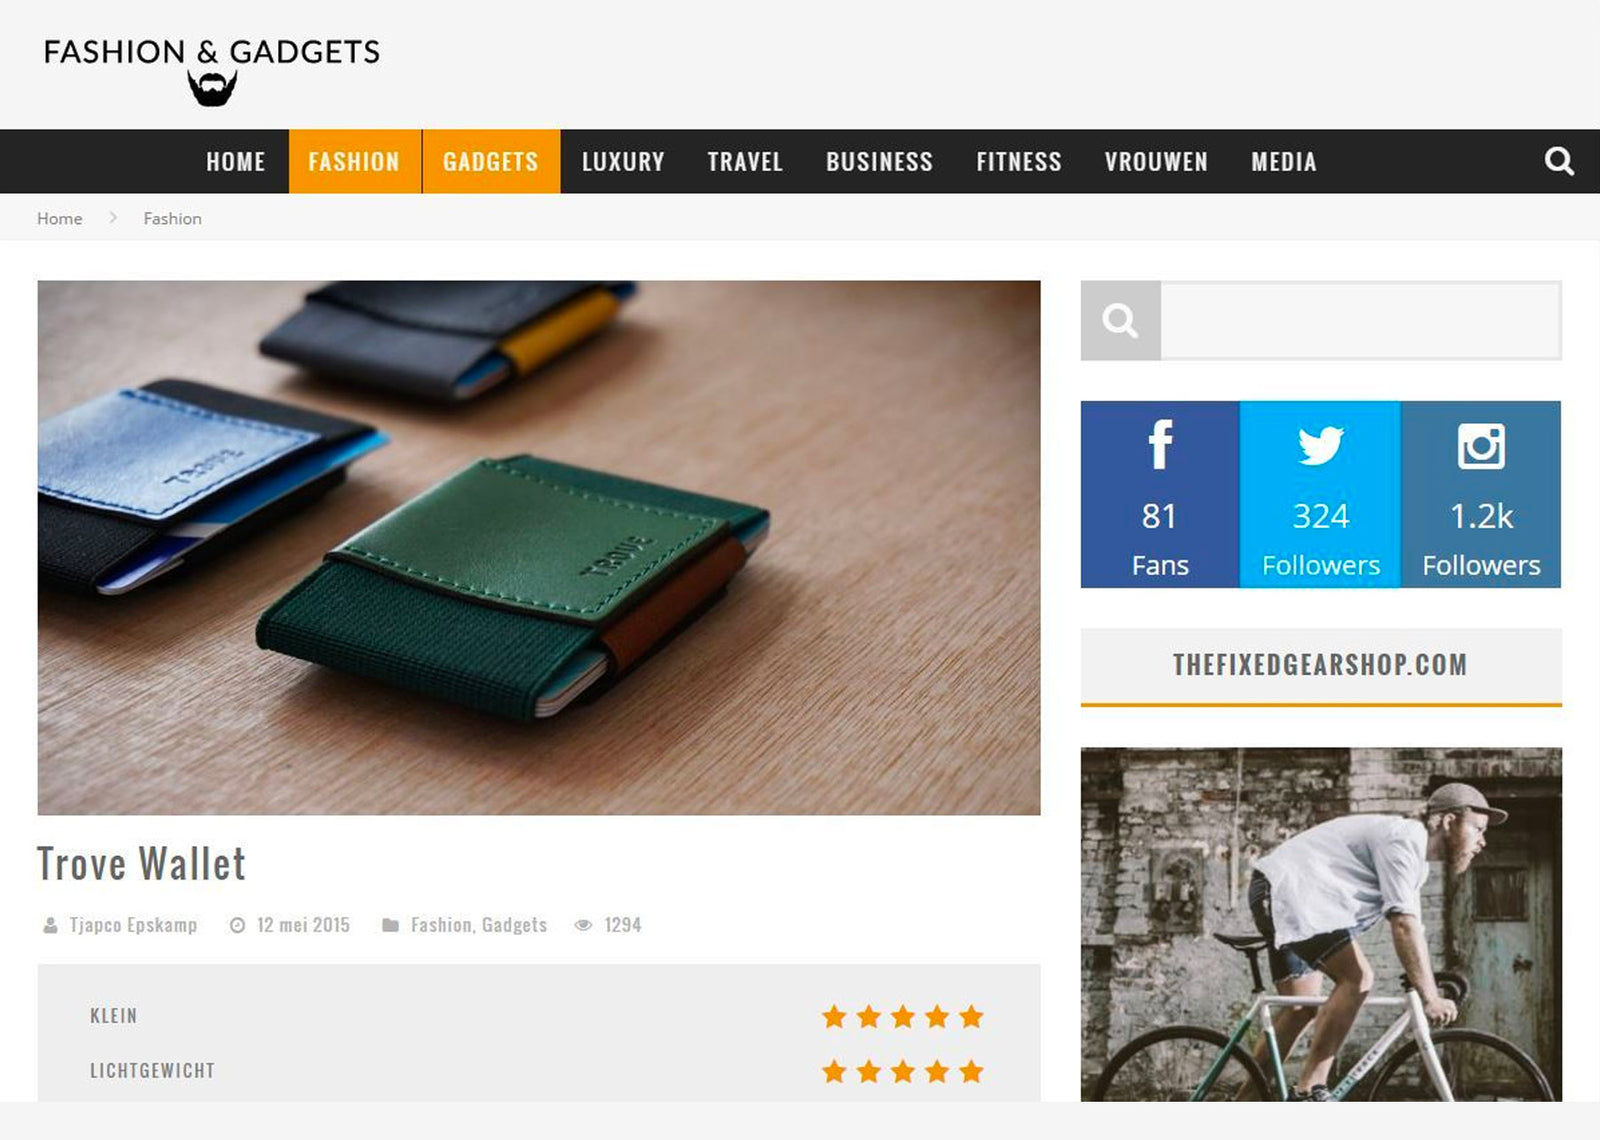 Review on Fashion & Gadgets